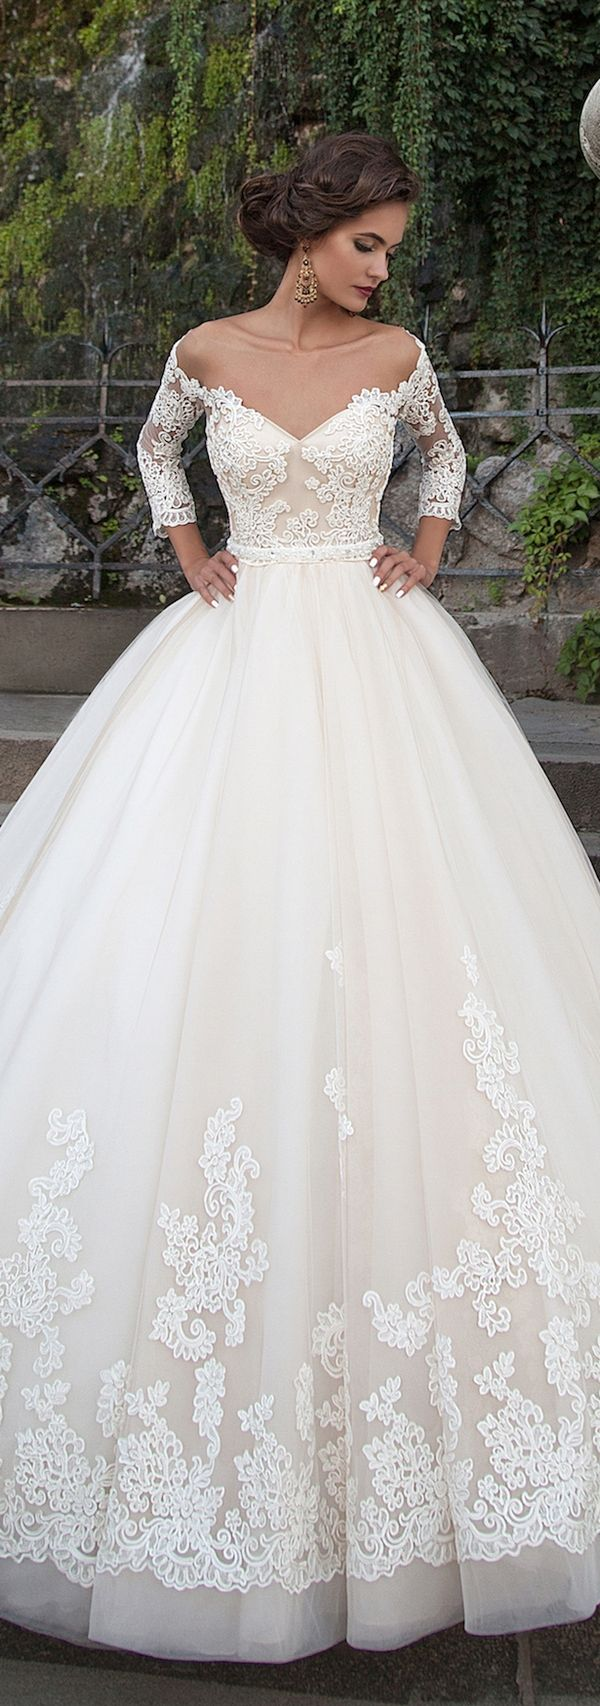 wedding dresses The Most Hottest Milla Nova Wedding Dresses